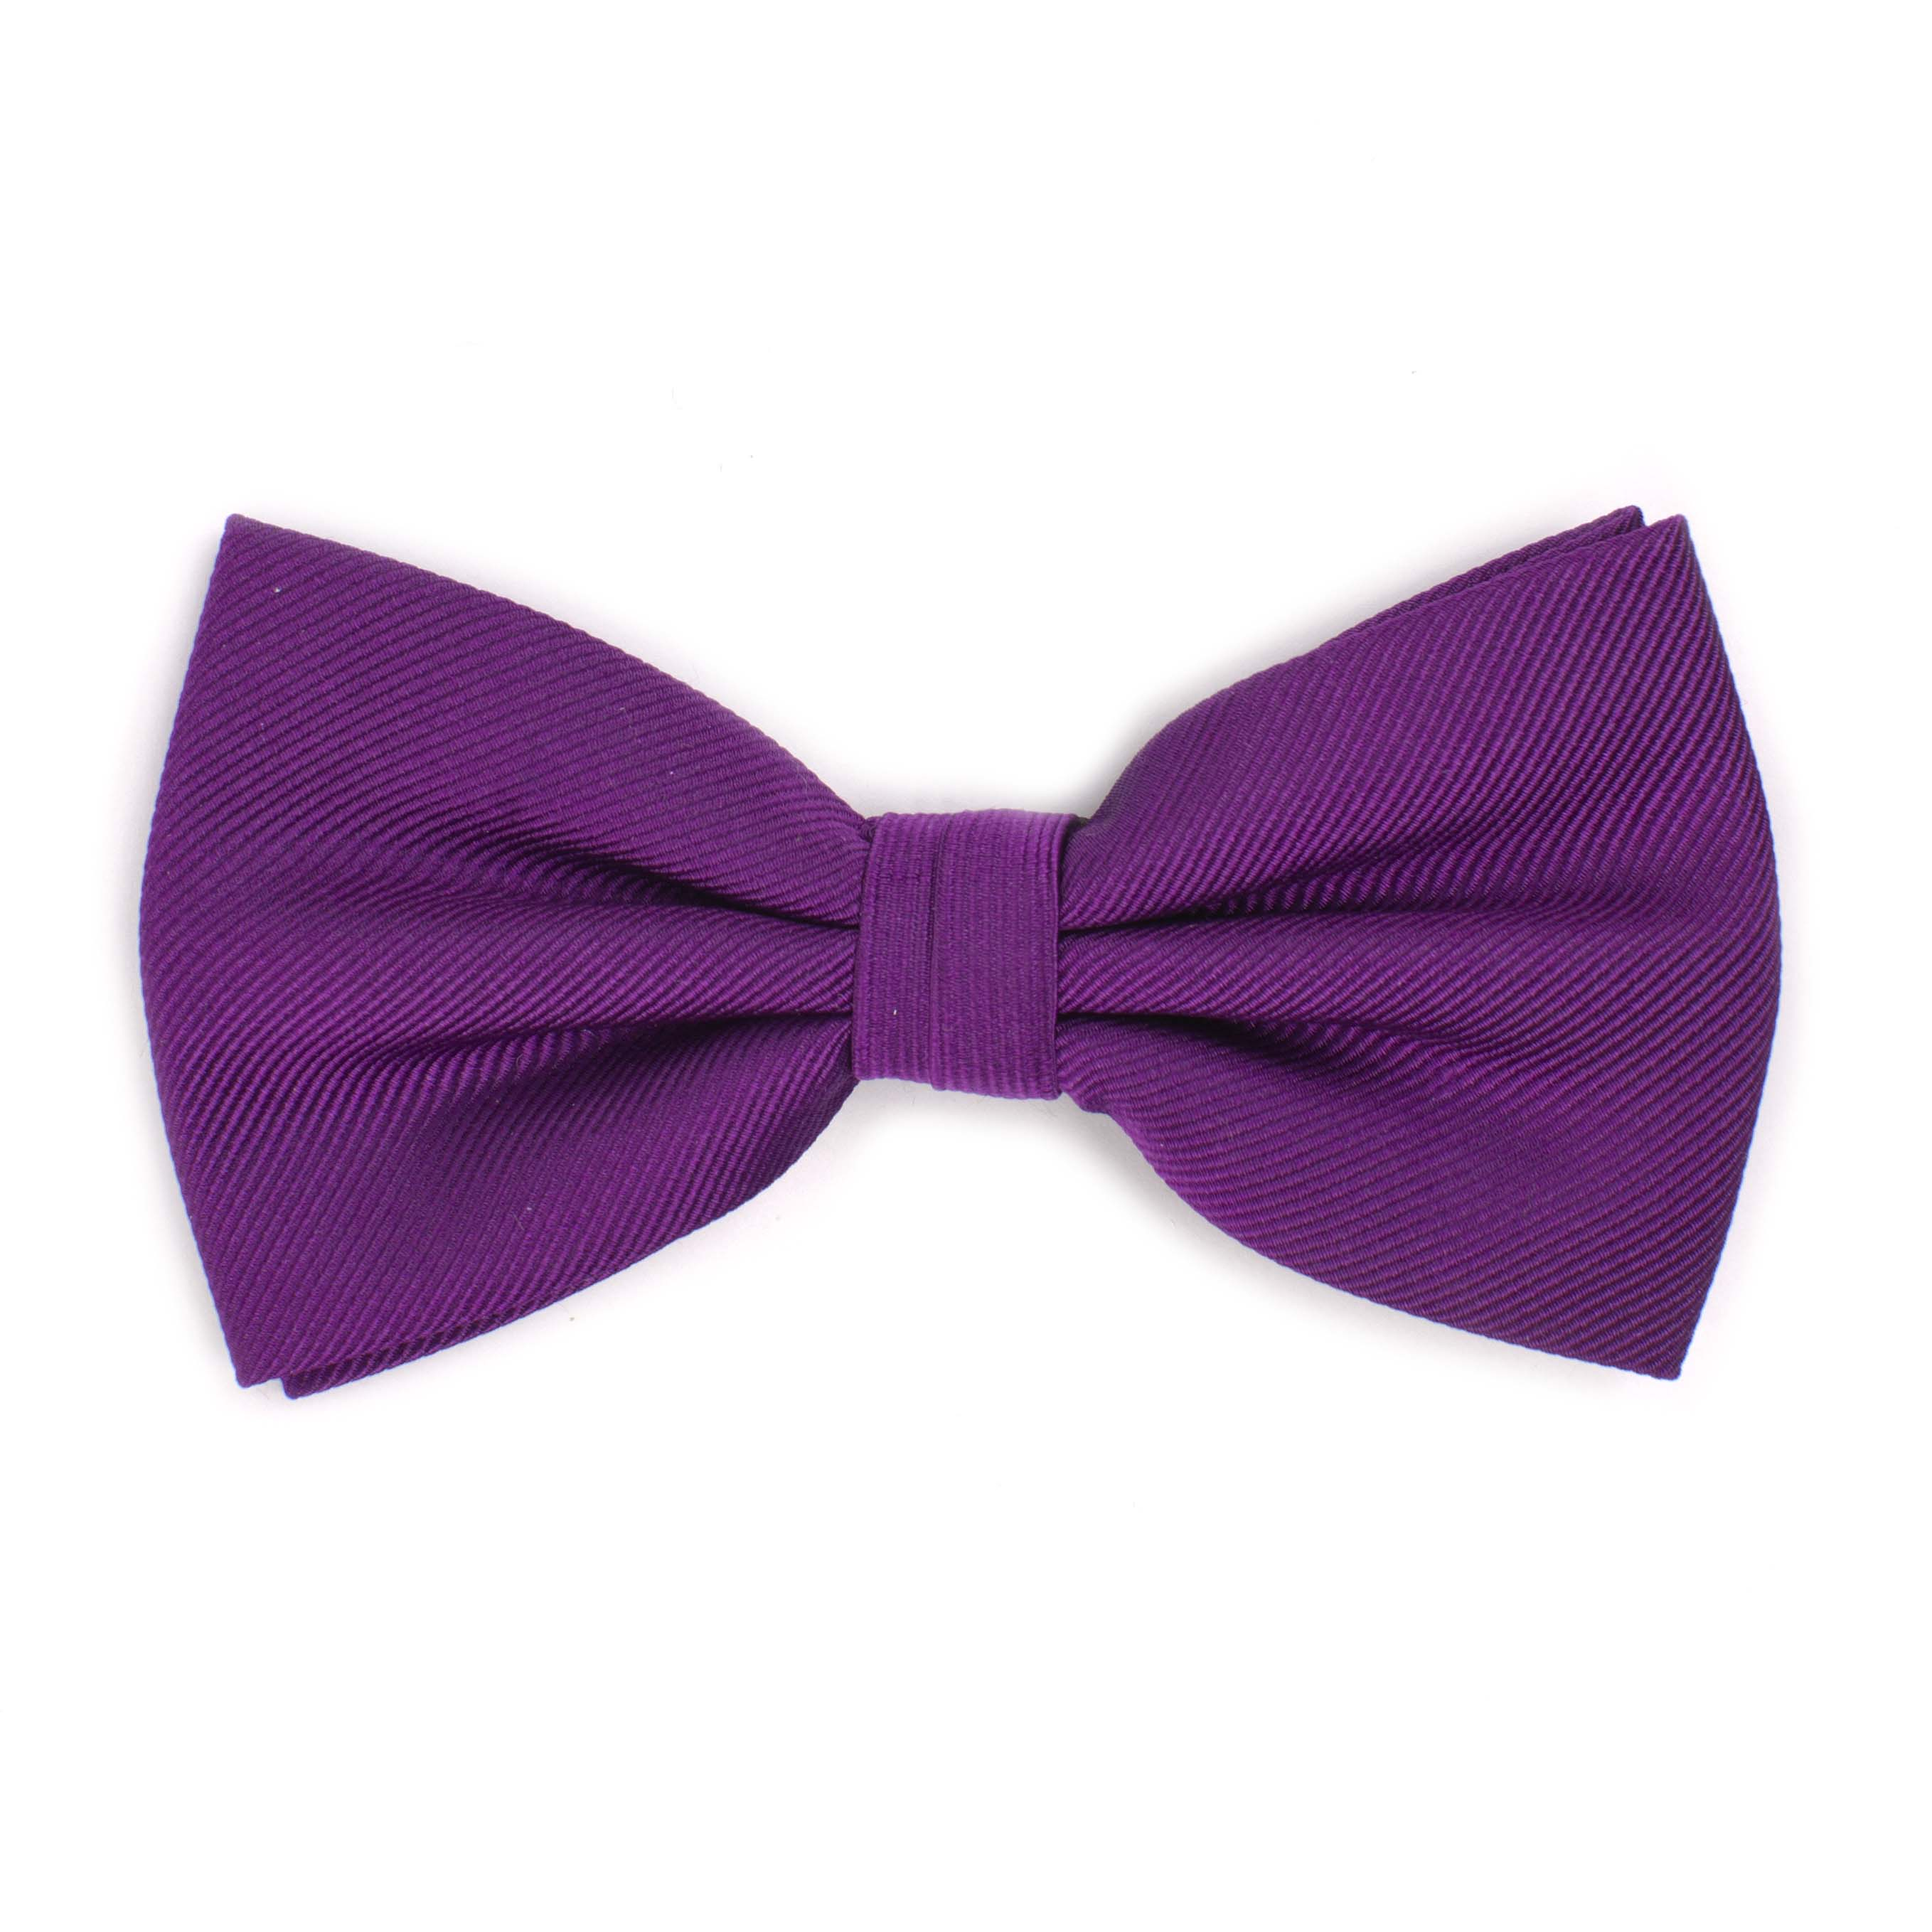 Bow tie classic ribbed purple